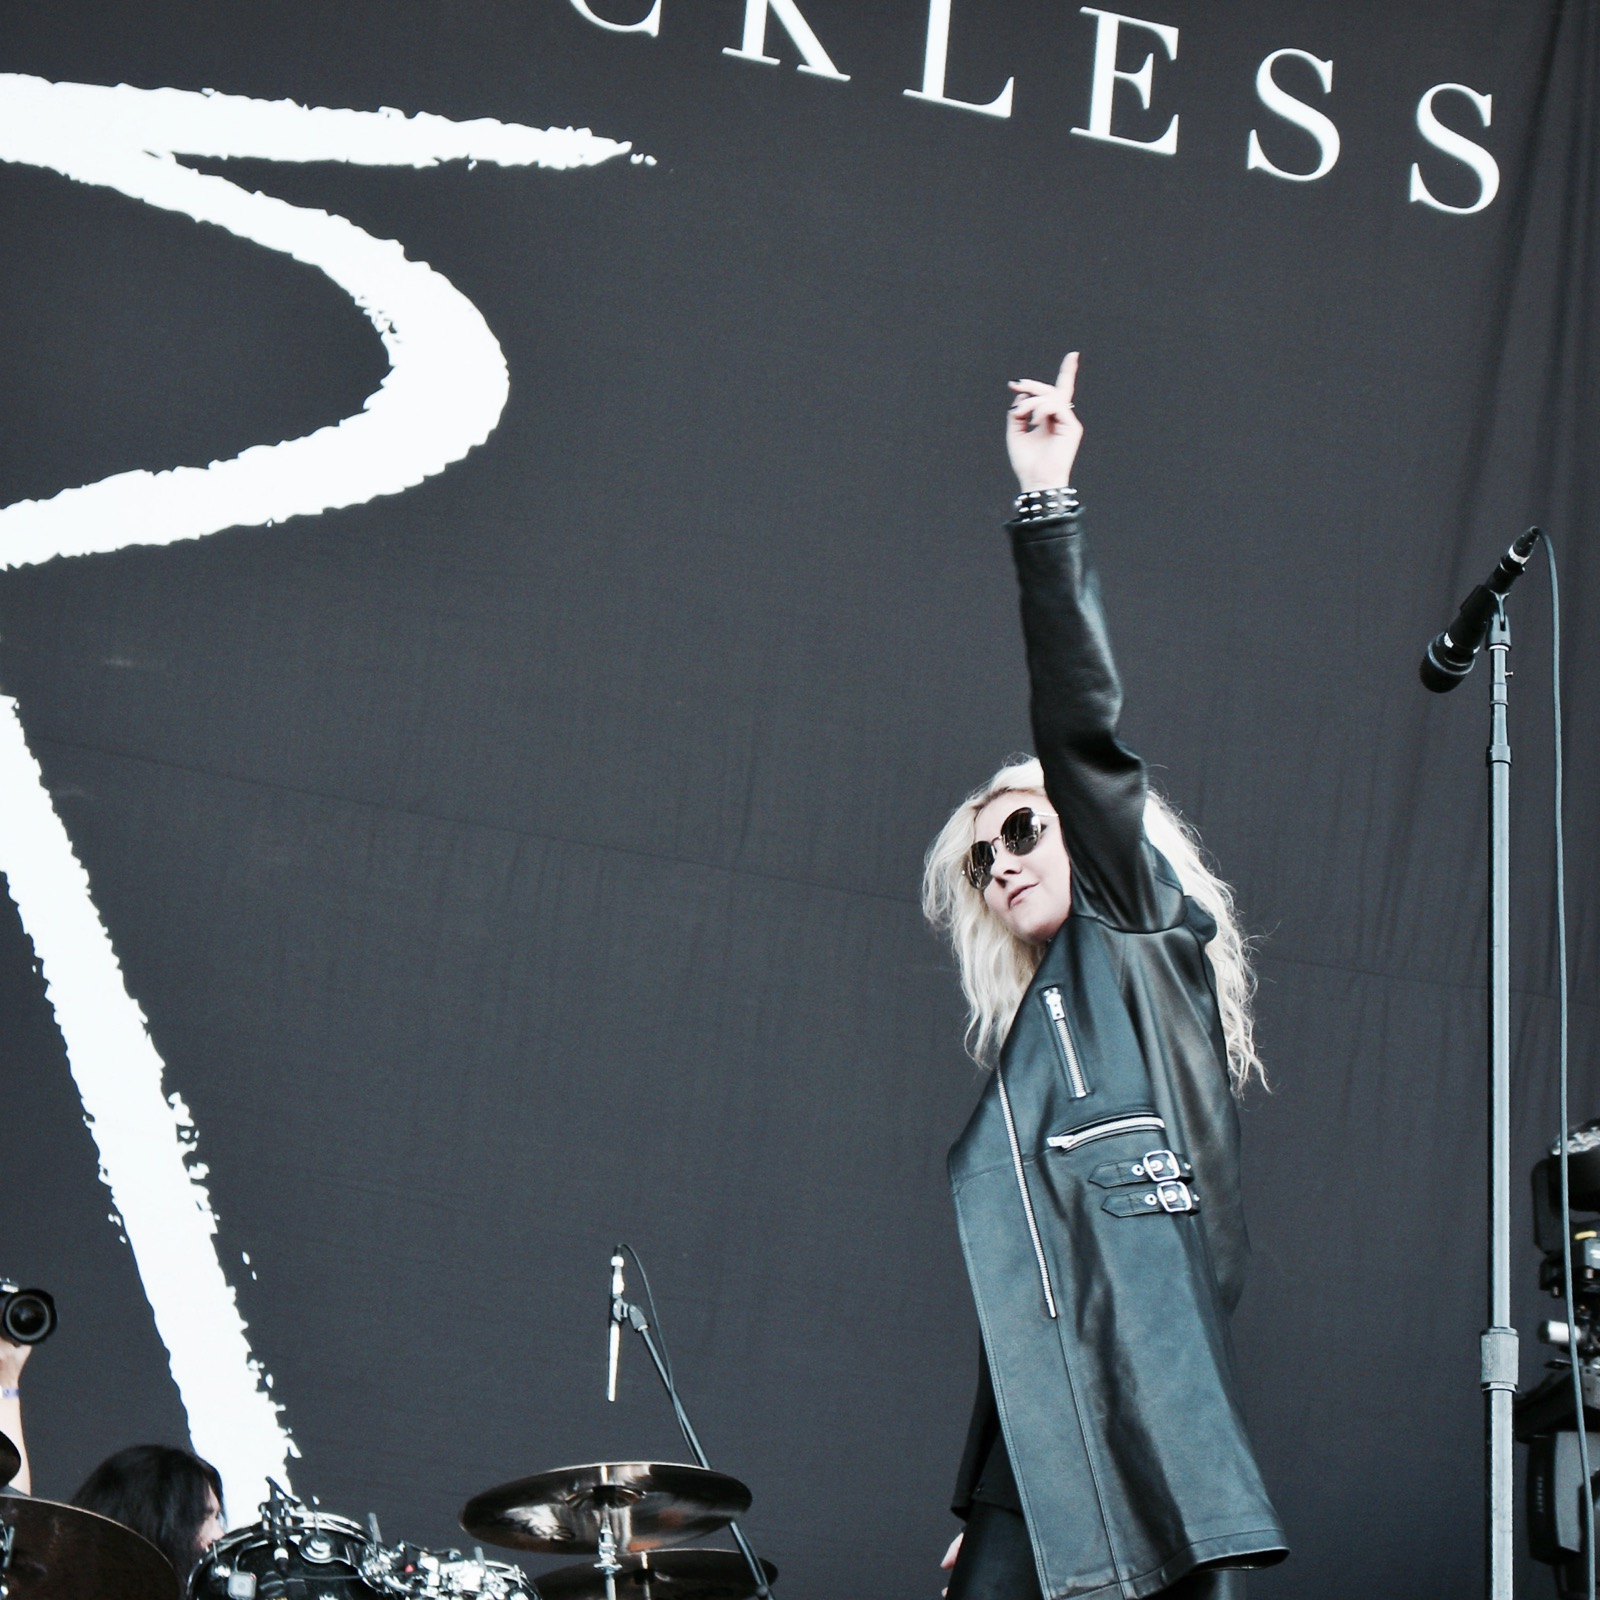 07-the-pretty-reckless-fm4-frequency-festival-2017-thexed-xedblog